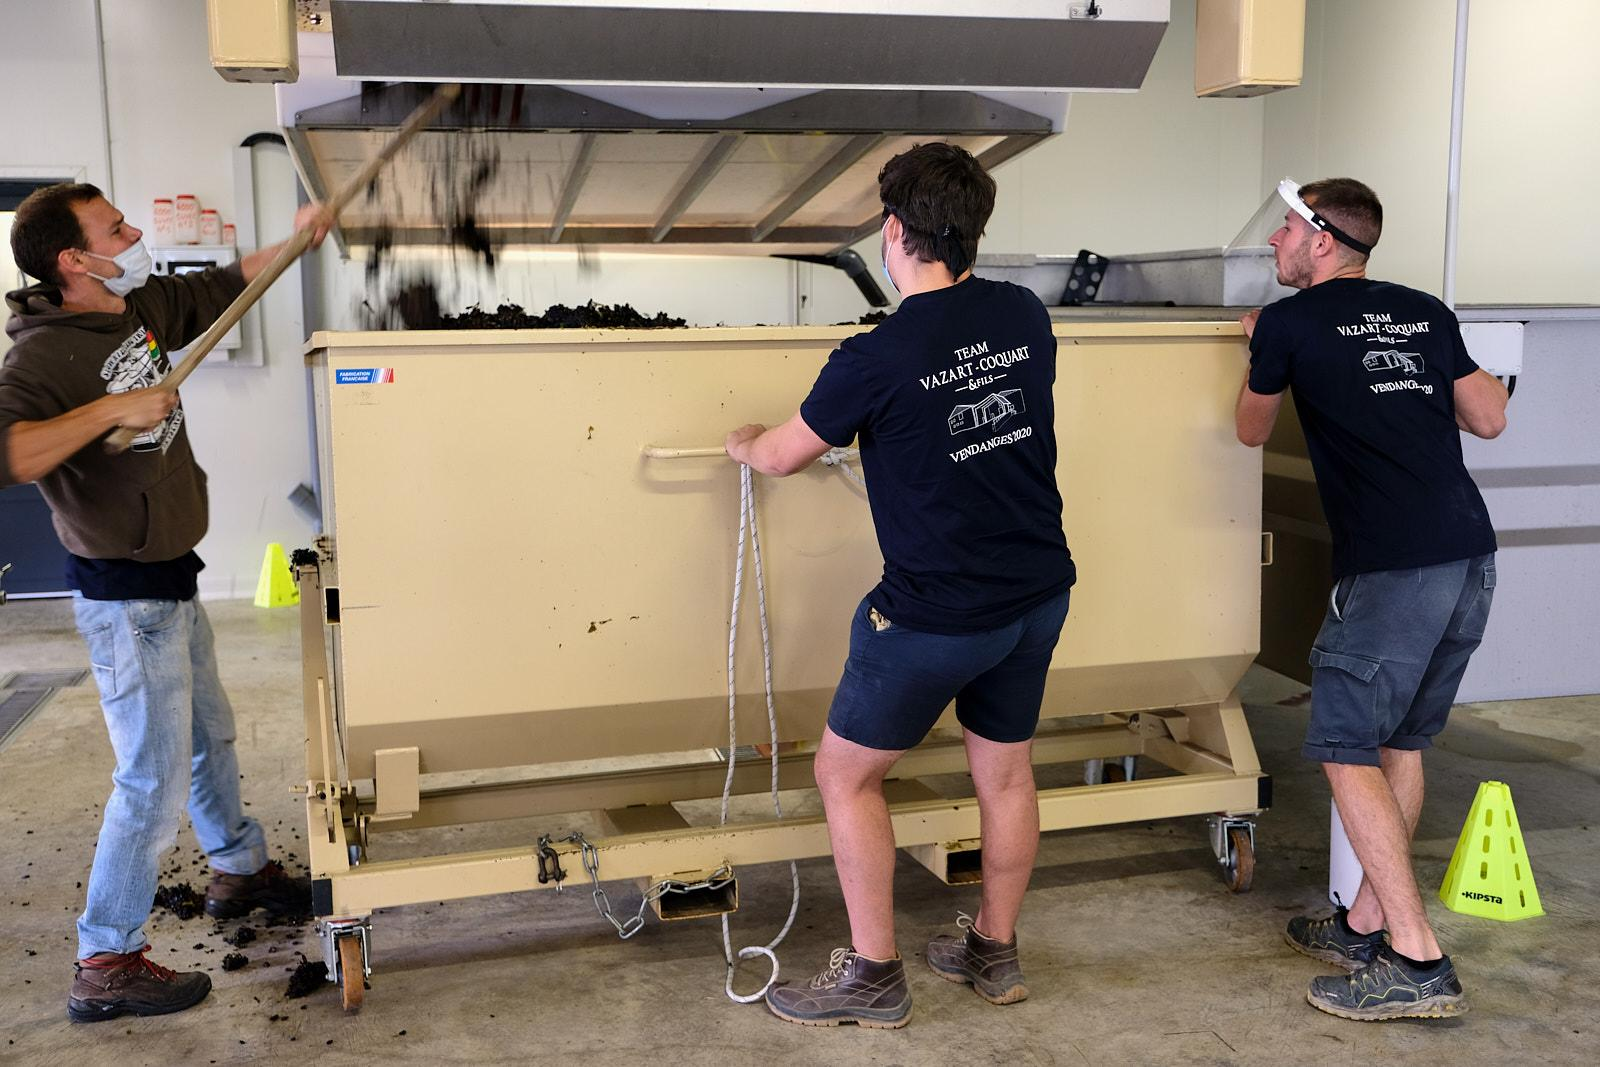 Workers of the Vazart-Coquart & fils Champagne brand take out the residu pulp from pressed grapes into bins. The residu will be used to make hand sanitising gel for the pharmaceutical industry.